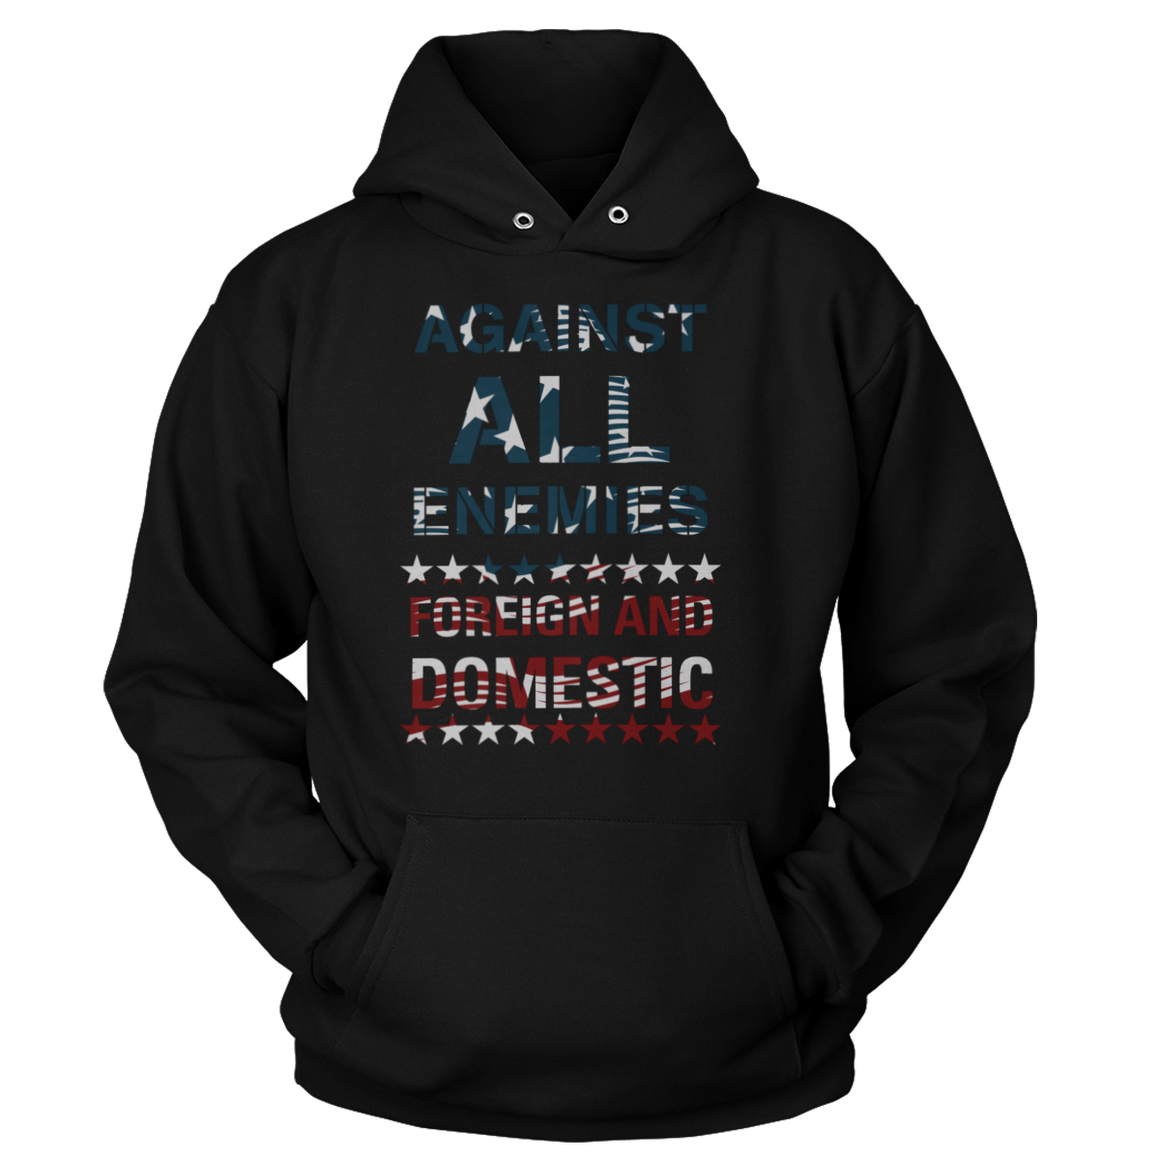 Against All Enemies v.3 (Hoodie)